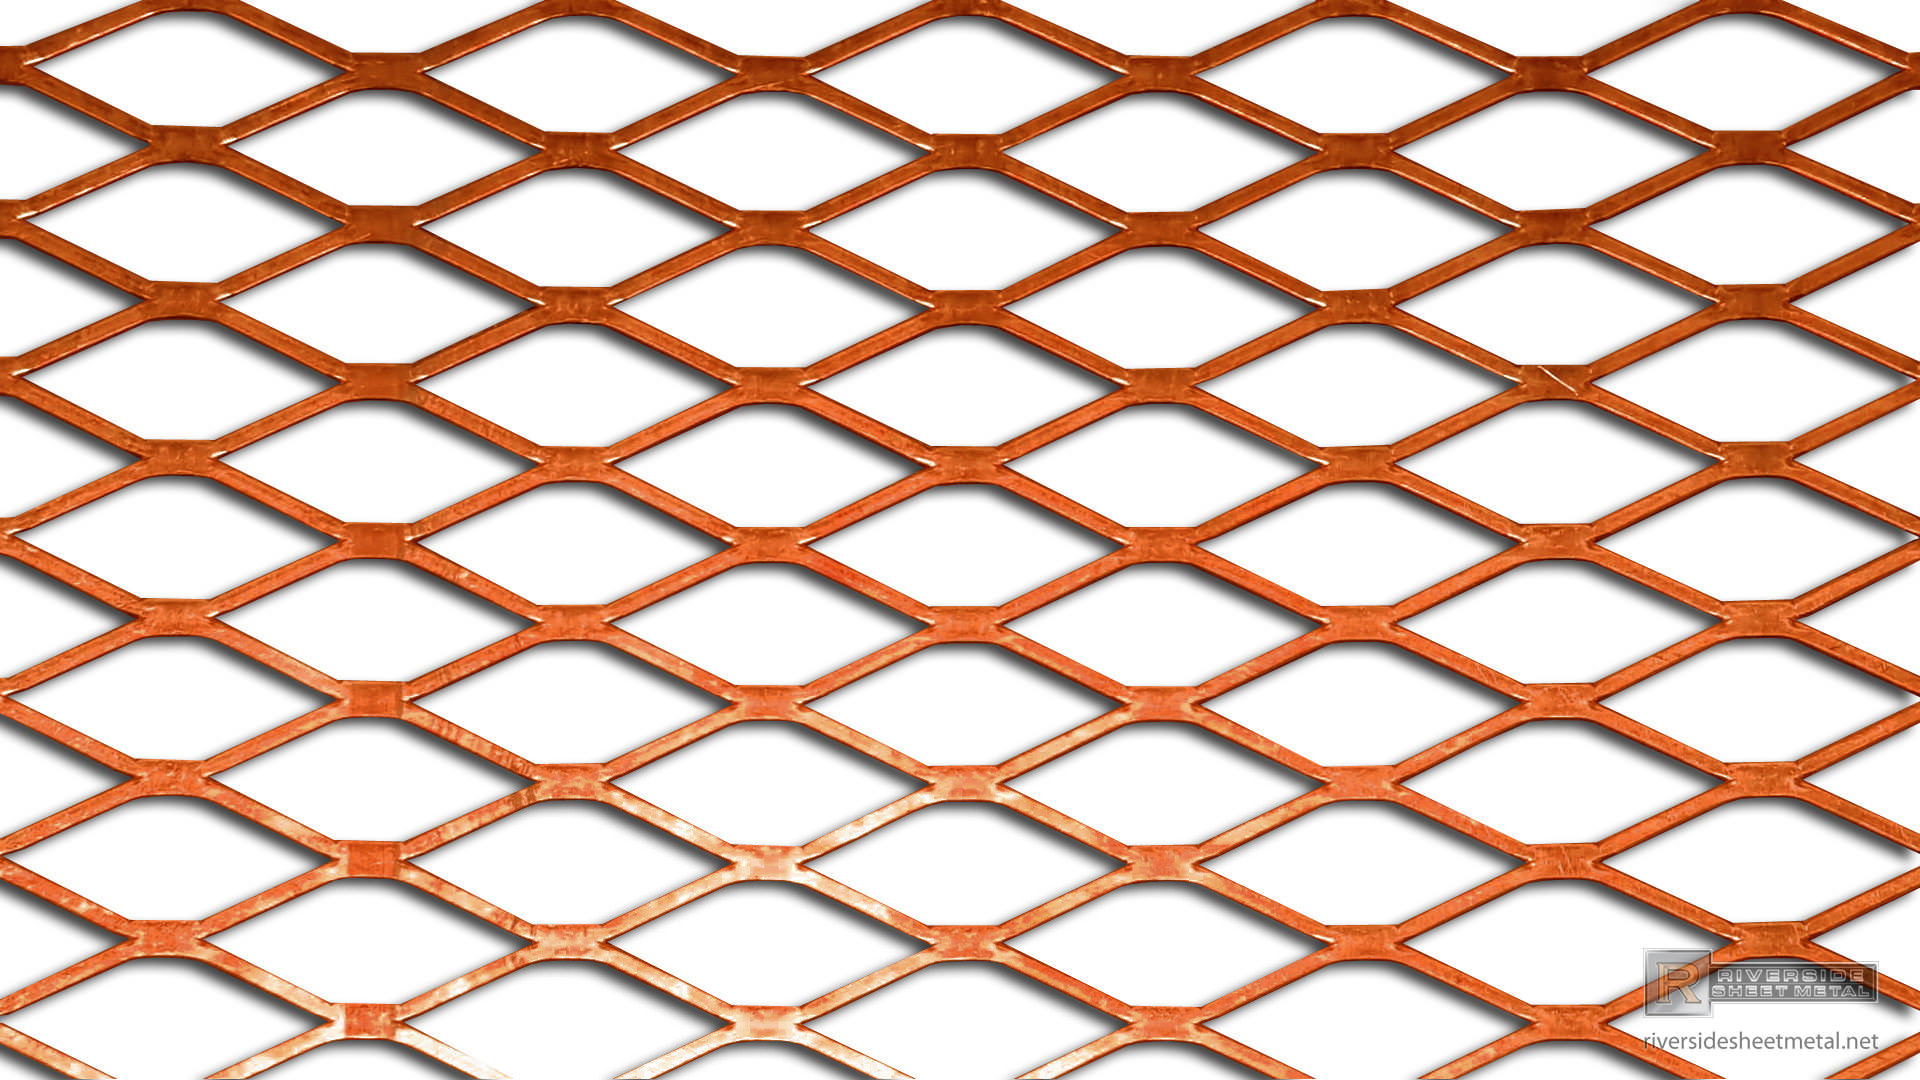 Copper Expanded Sheet Supply Riverside Sheet Metal